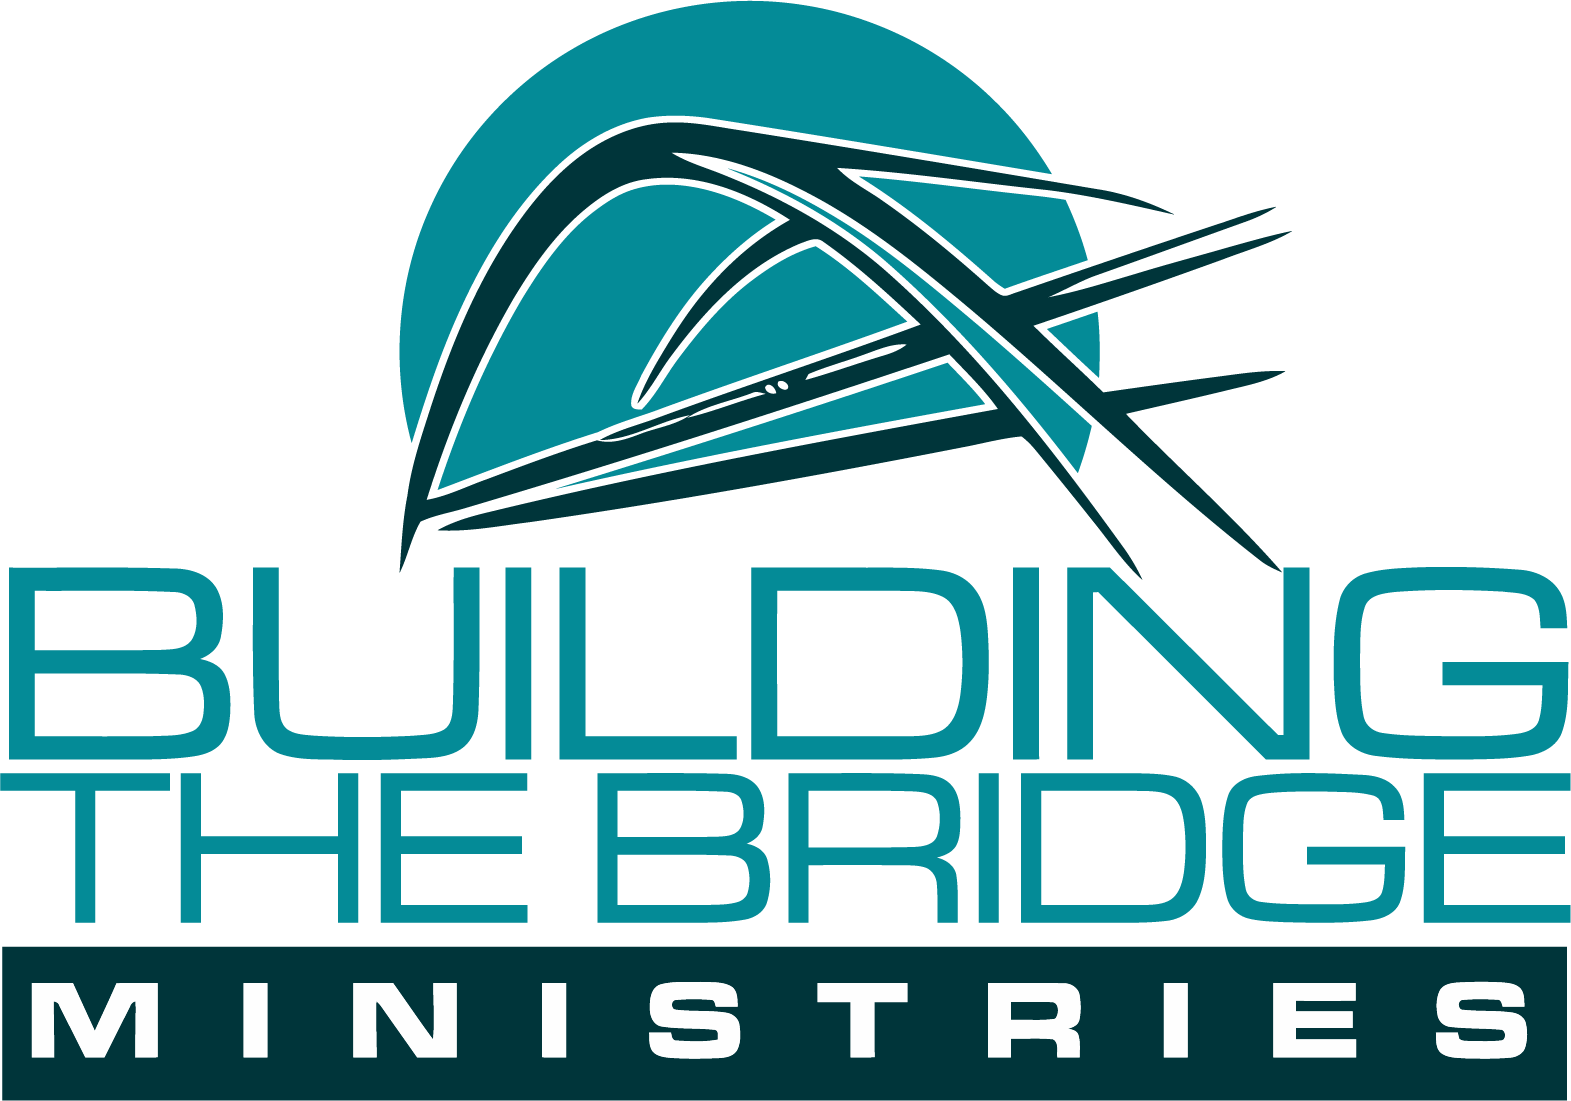 Building the Bridge Ministries